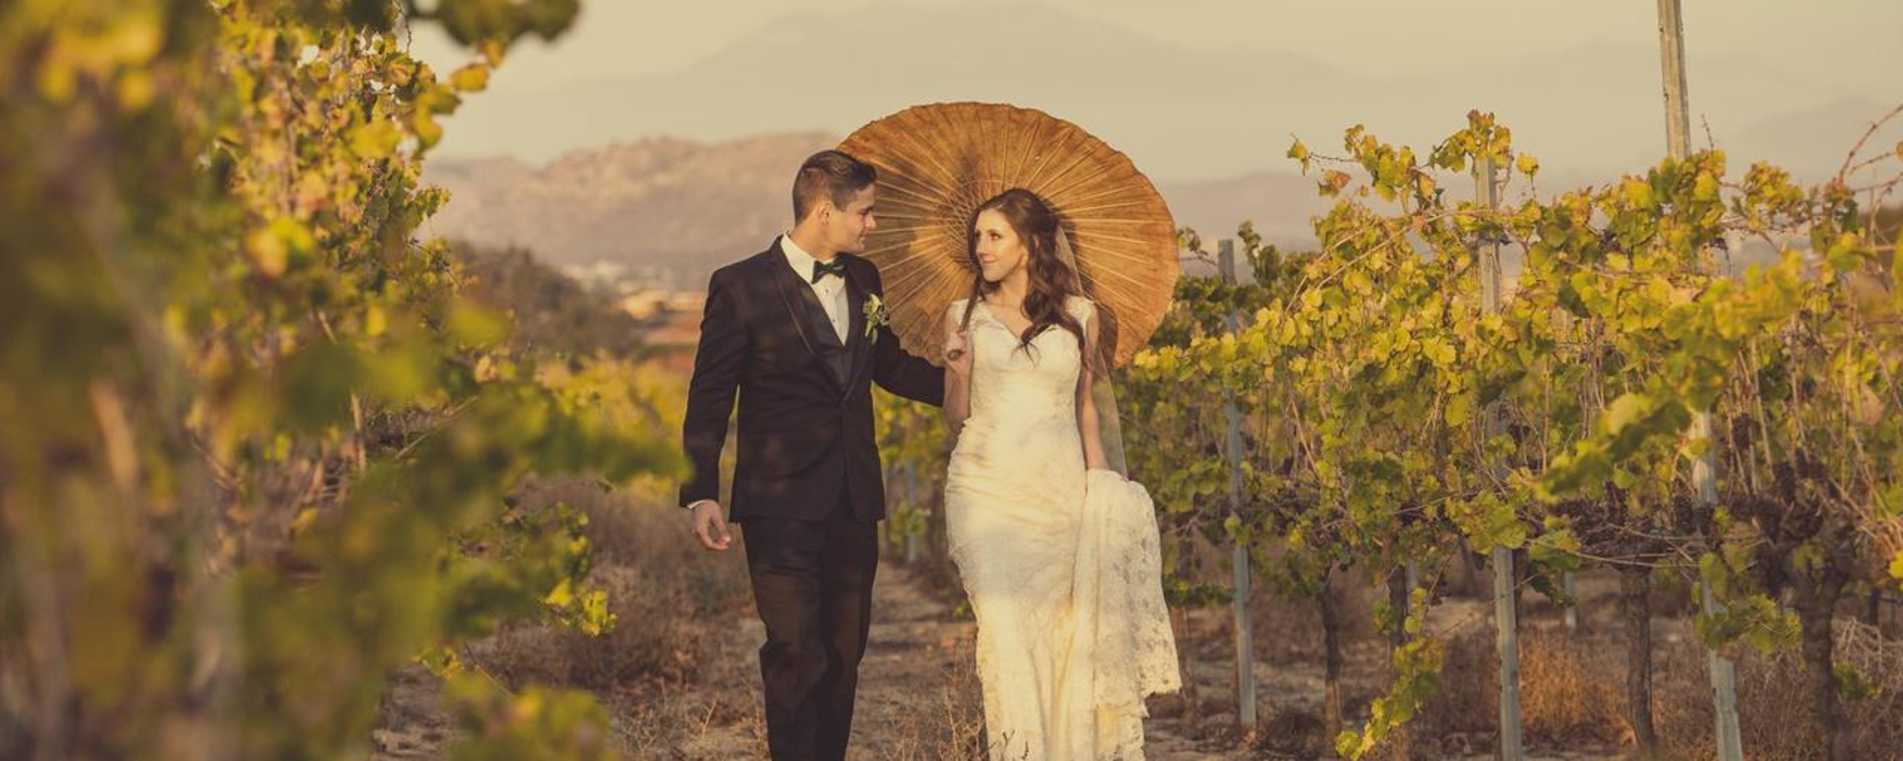 Temecula Valley Wedding Professionals